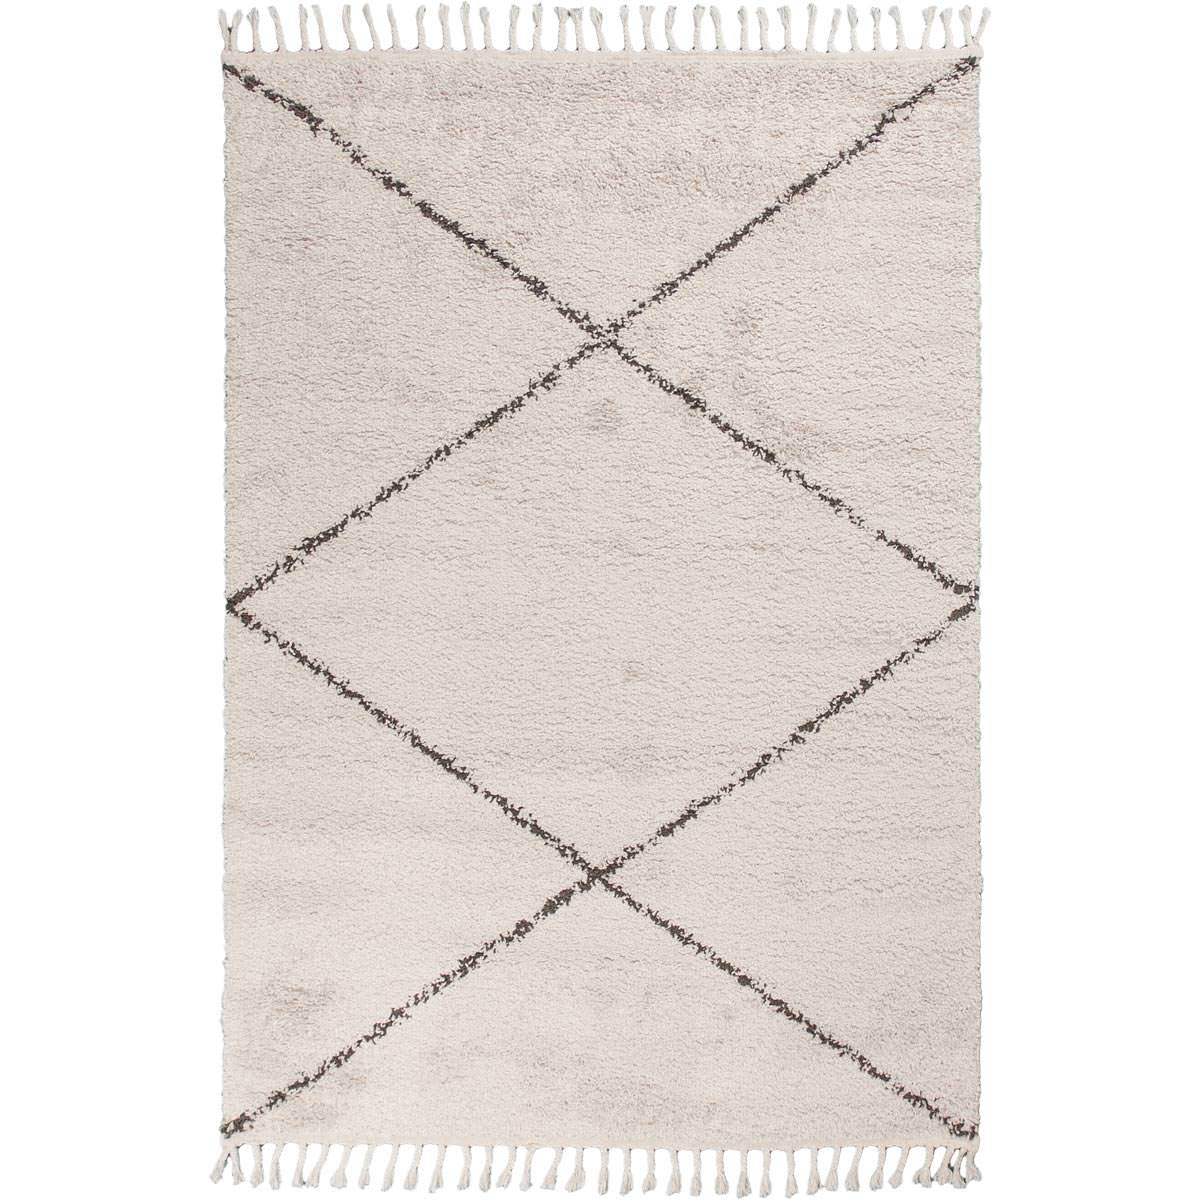 Shaggy Marrakech Rug 05 Cream/Black 1